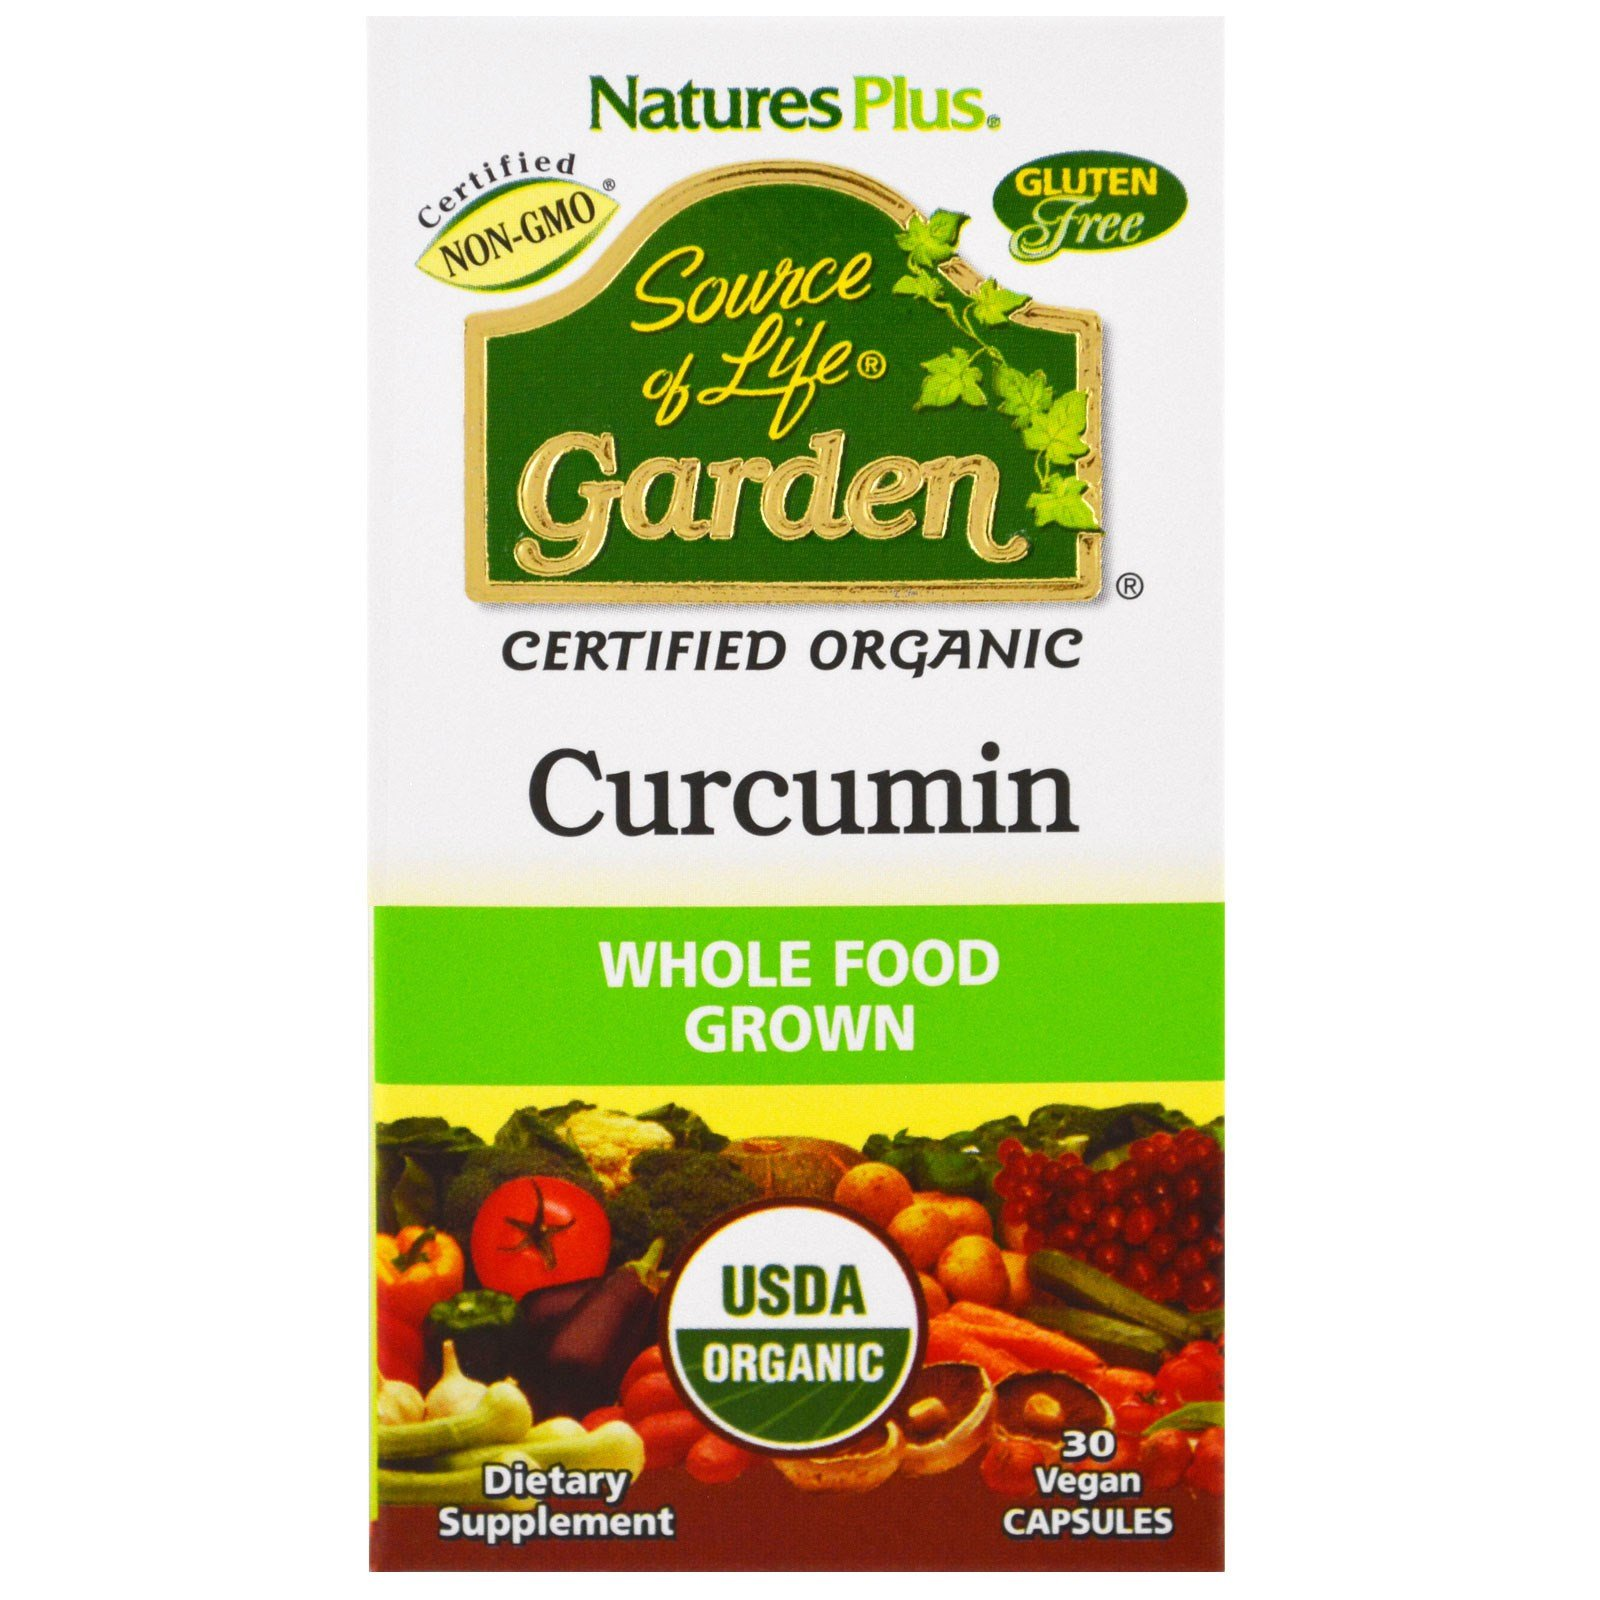 Nature's Plus, Source of Life Garden, Curcumin, 30 Vegan Capsules